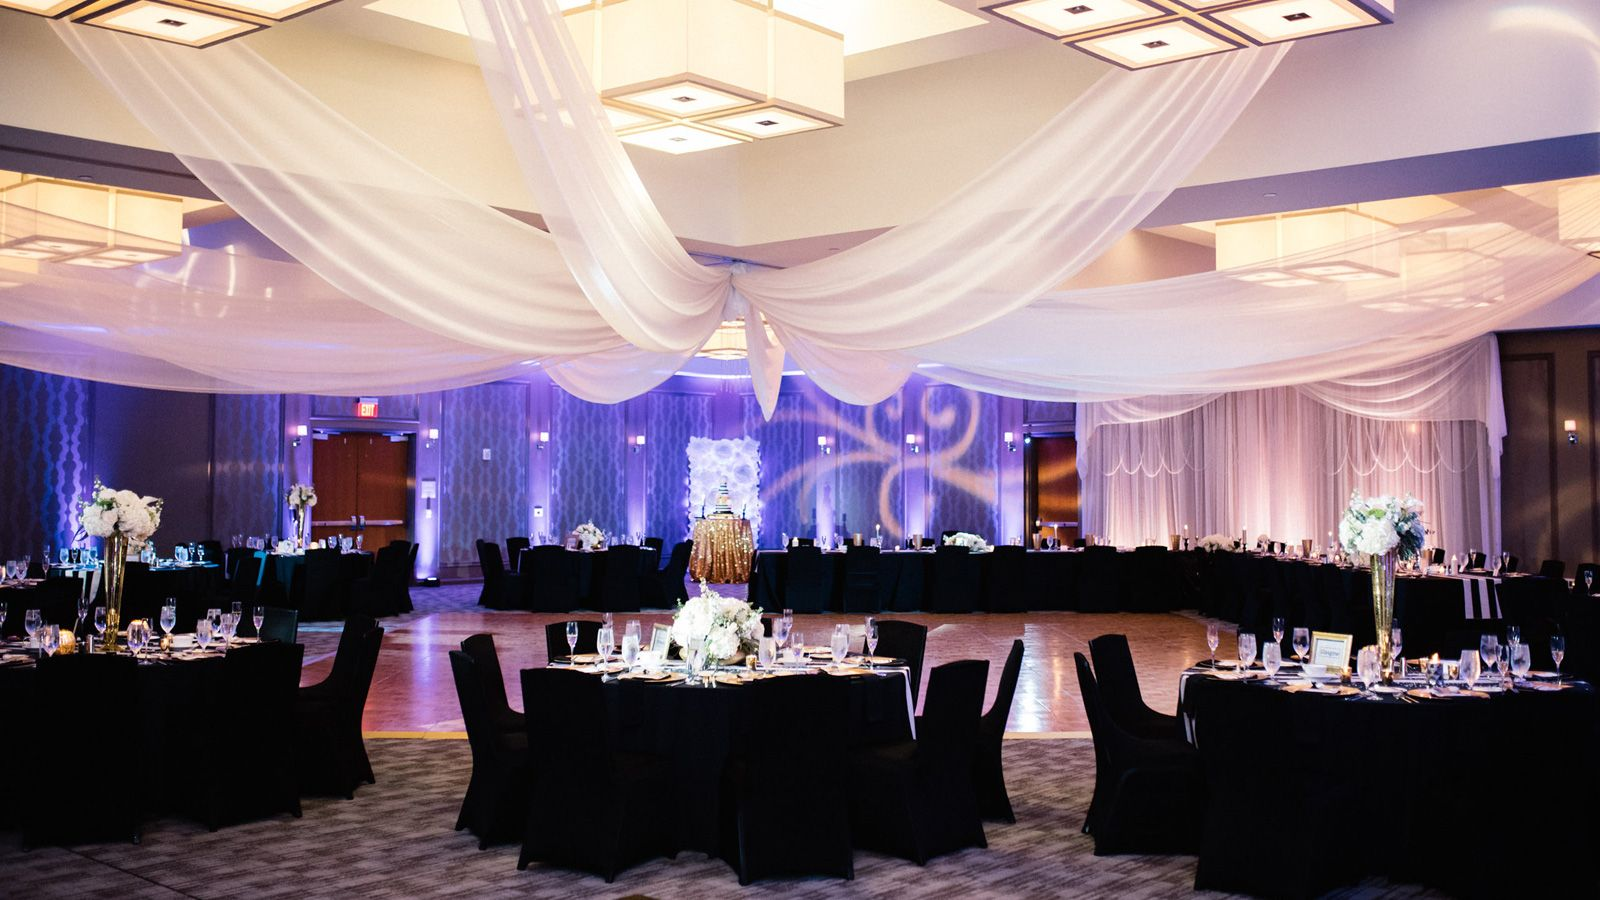 Wedding Venues in Orlando | The Westin Lake Mary, Orlando North Hotel